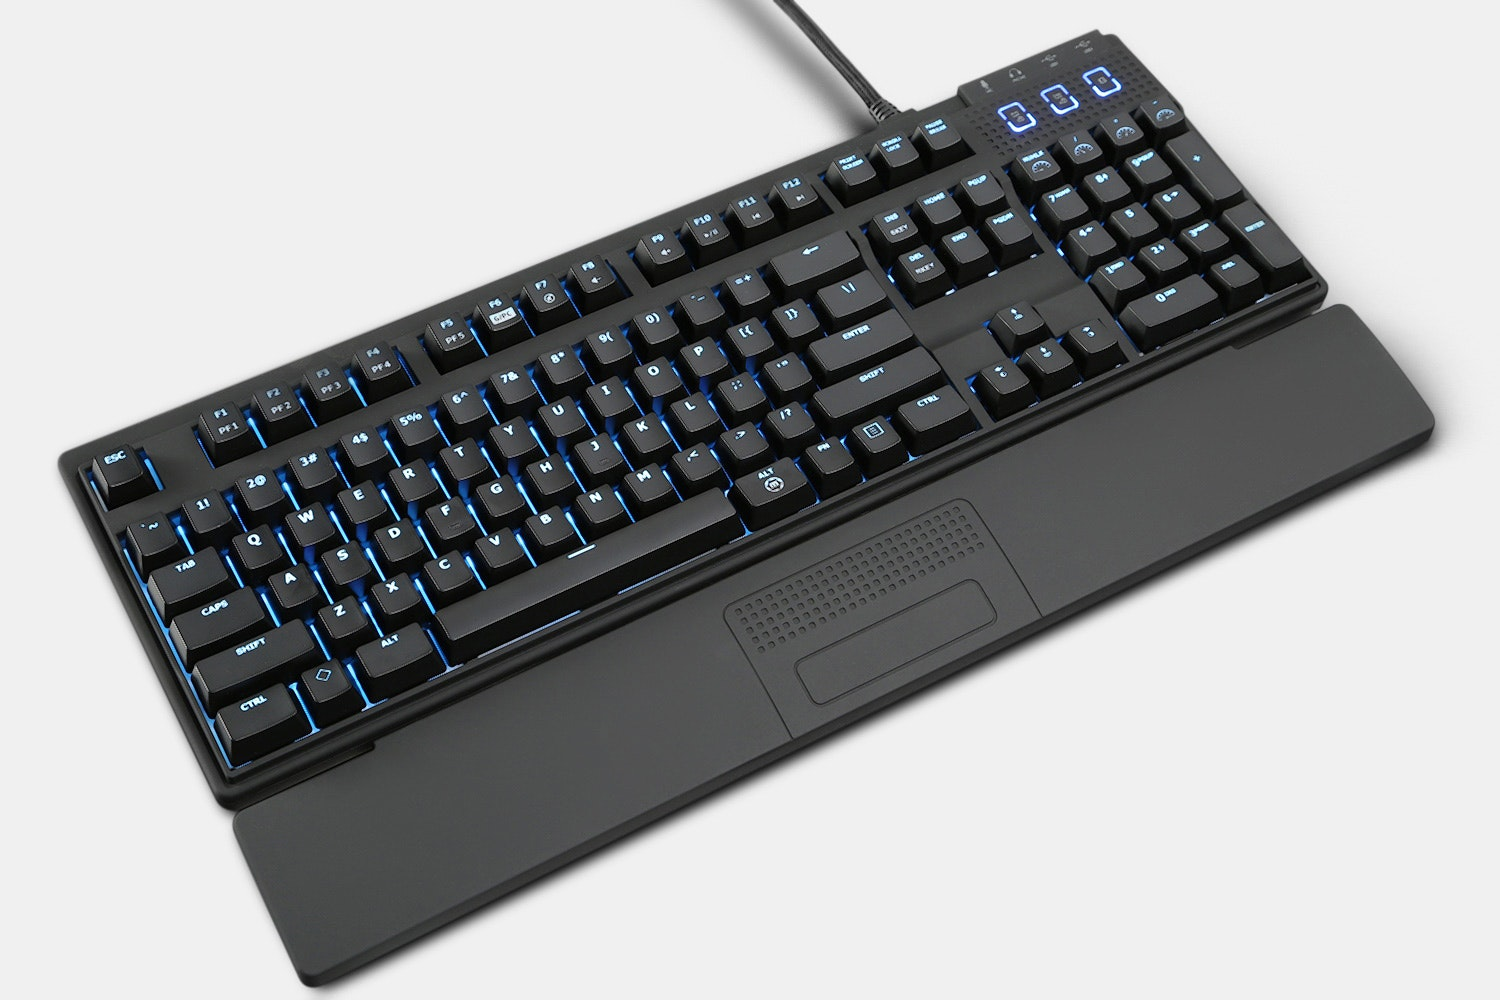 Klictro Chameleon RGB Mechanical Keyboard